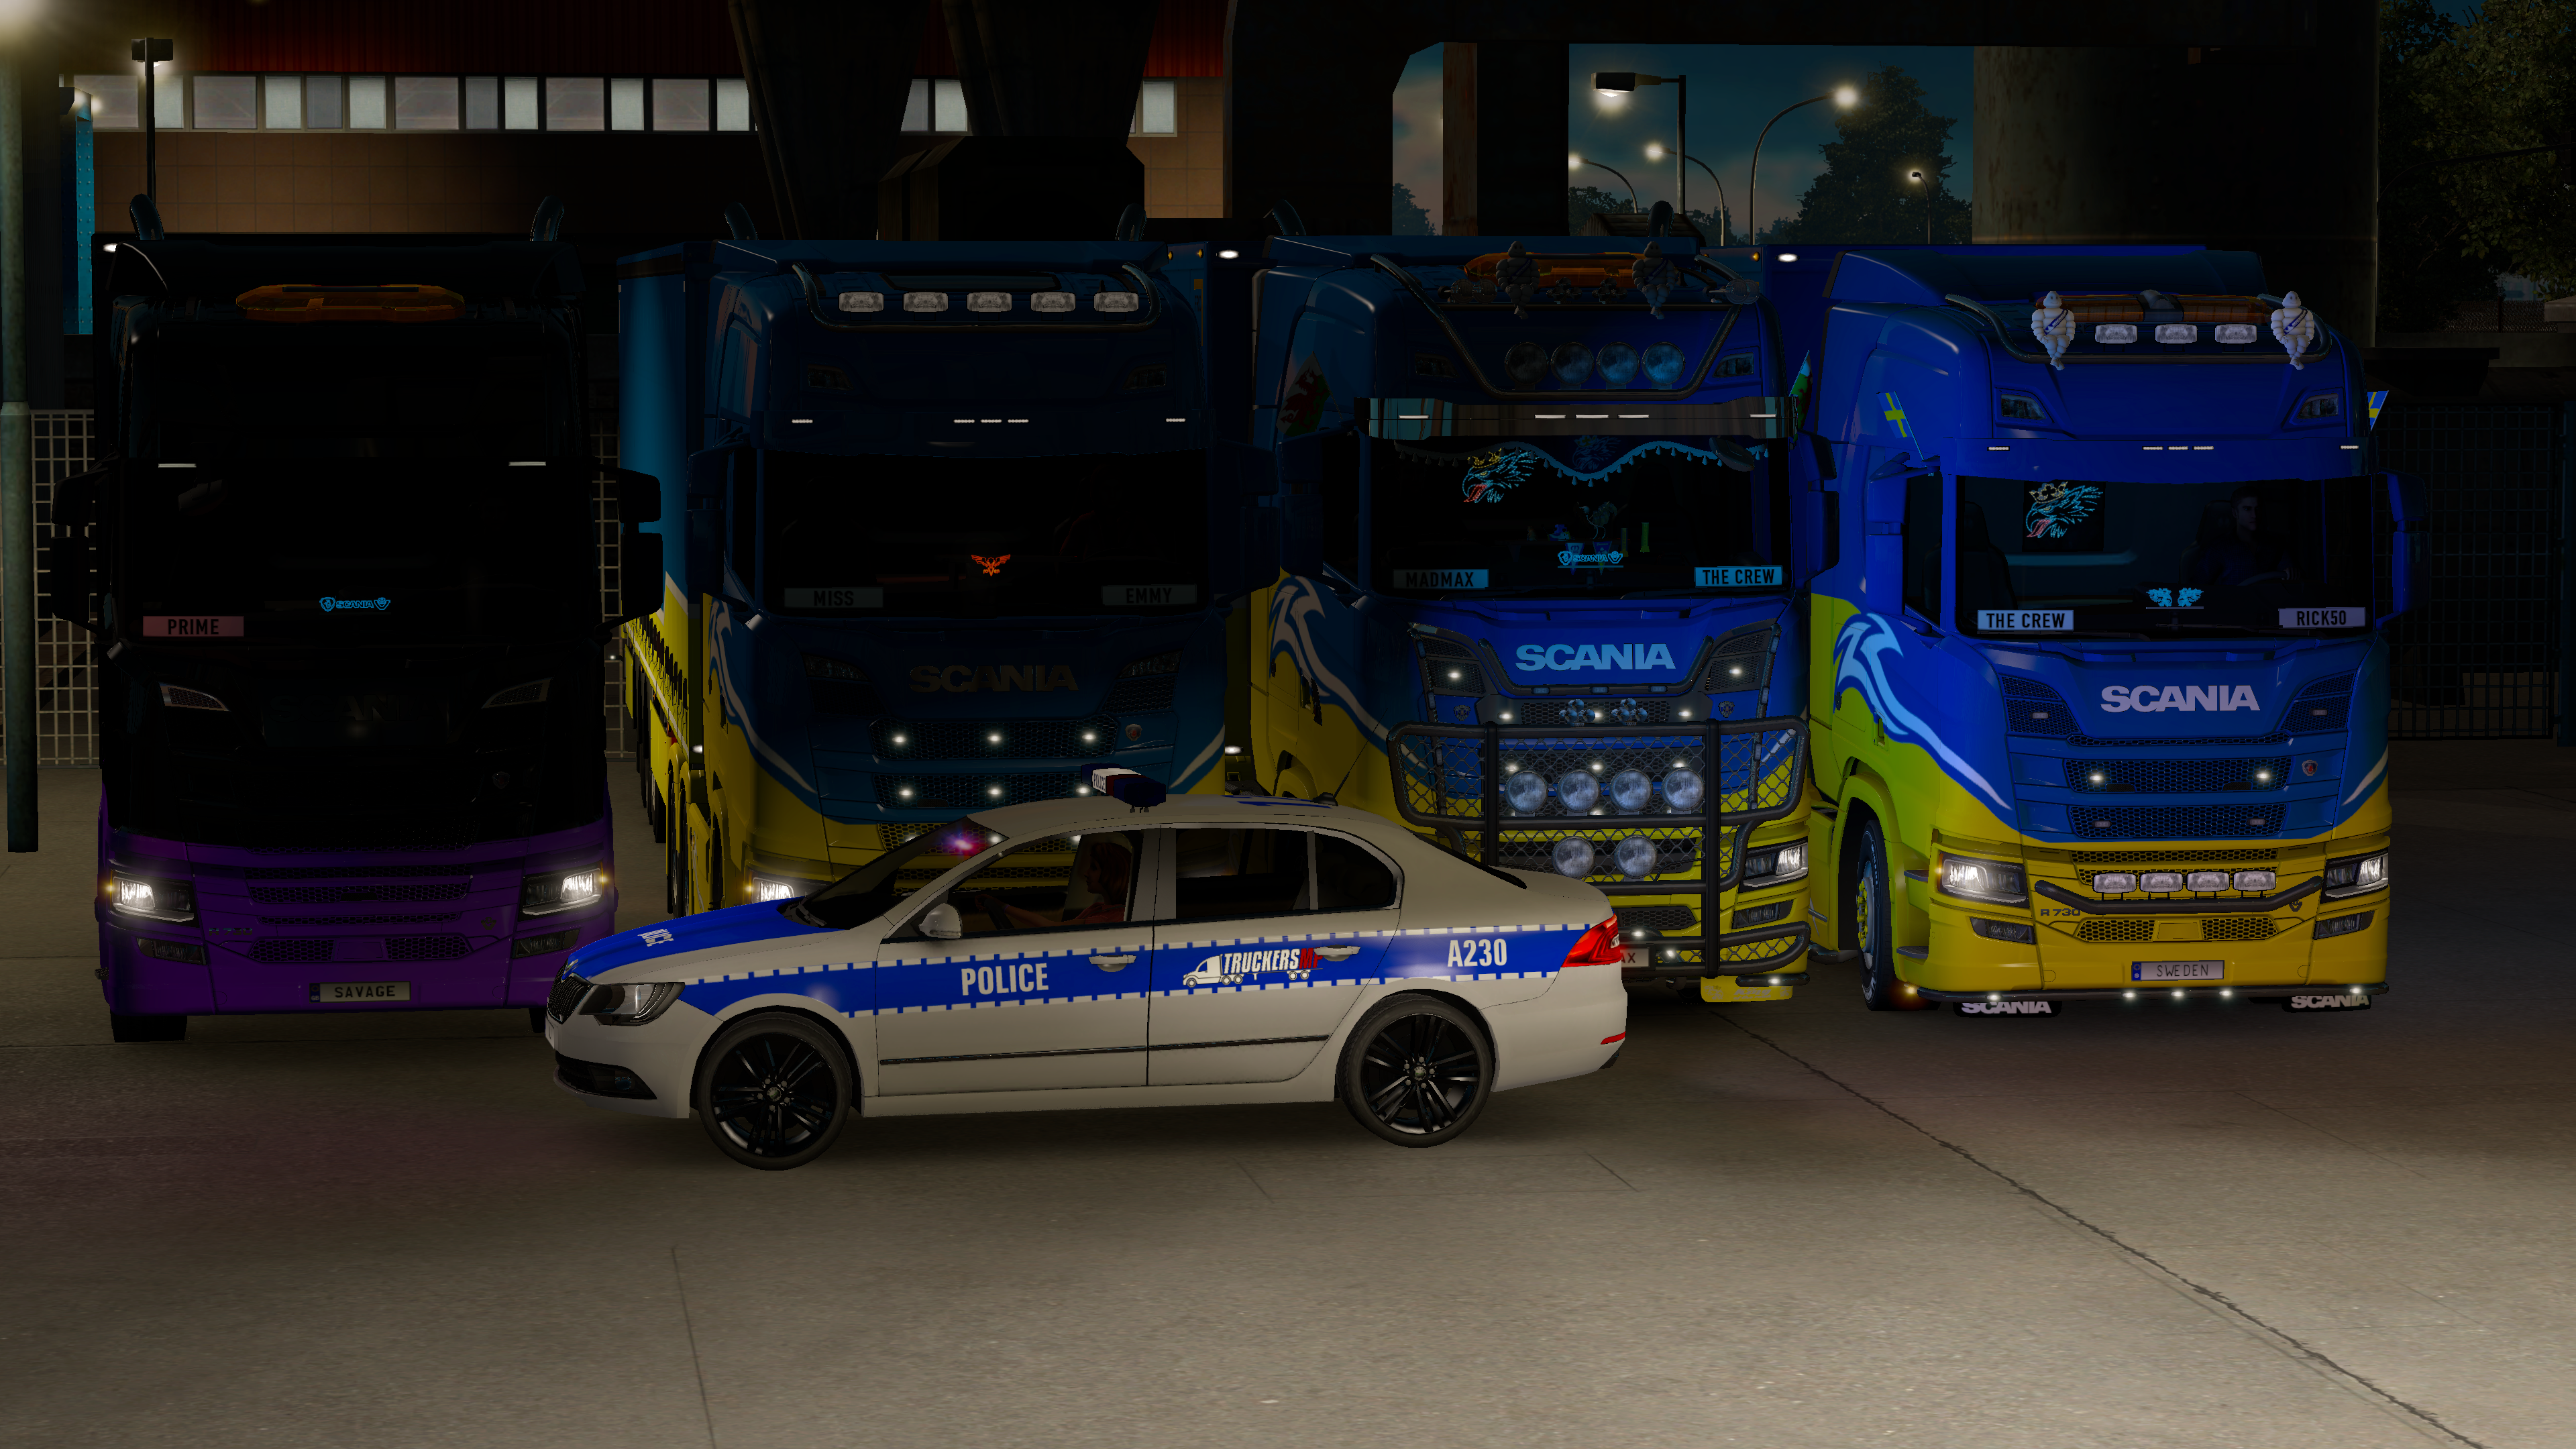 ets2_20190310_000257_00.png